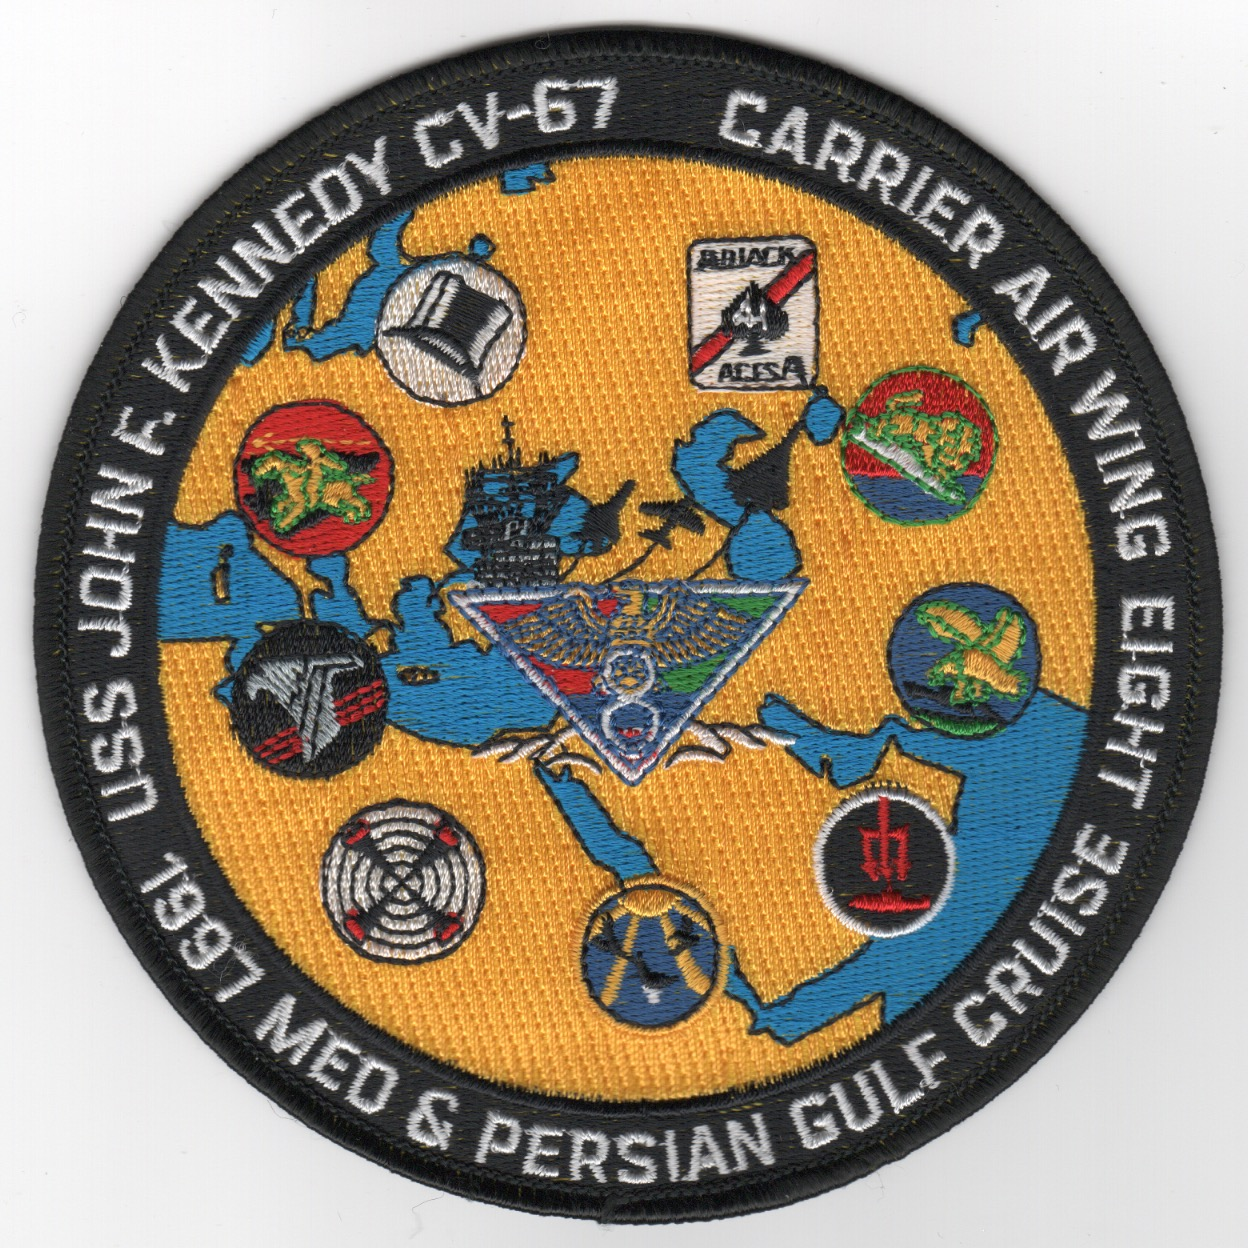 461) CV-67/CVW-8 '1997 'MED /GULF' Cruise Patch